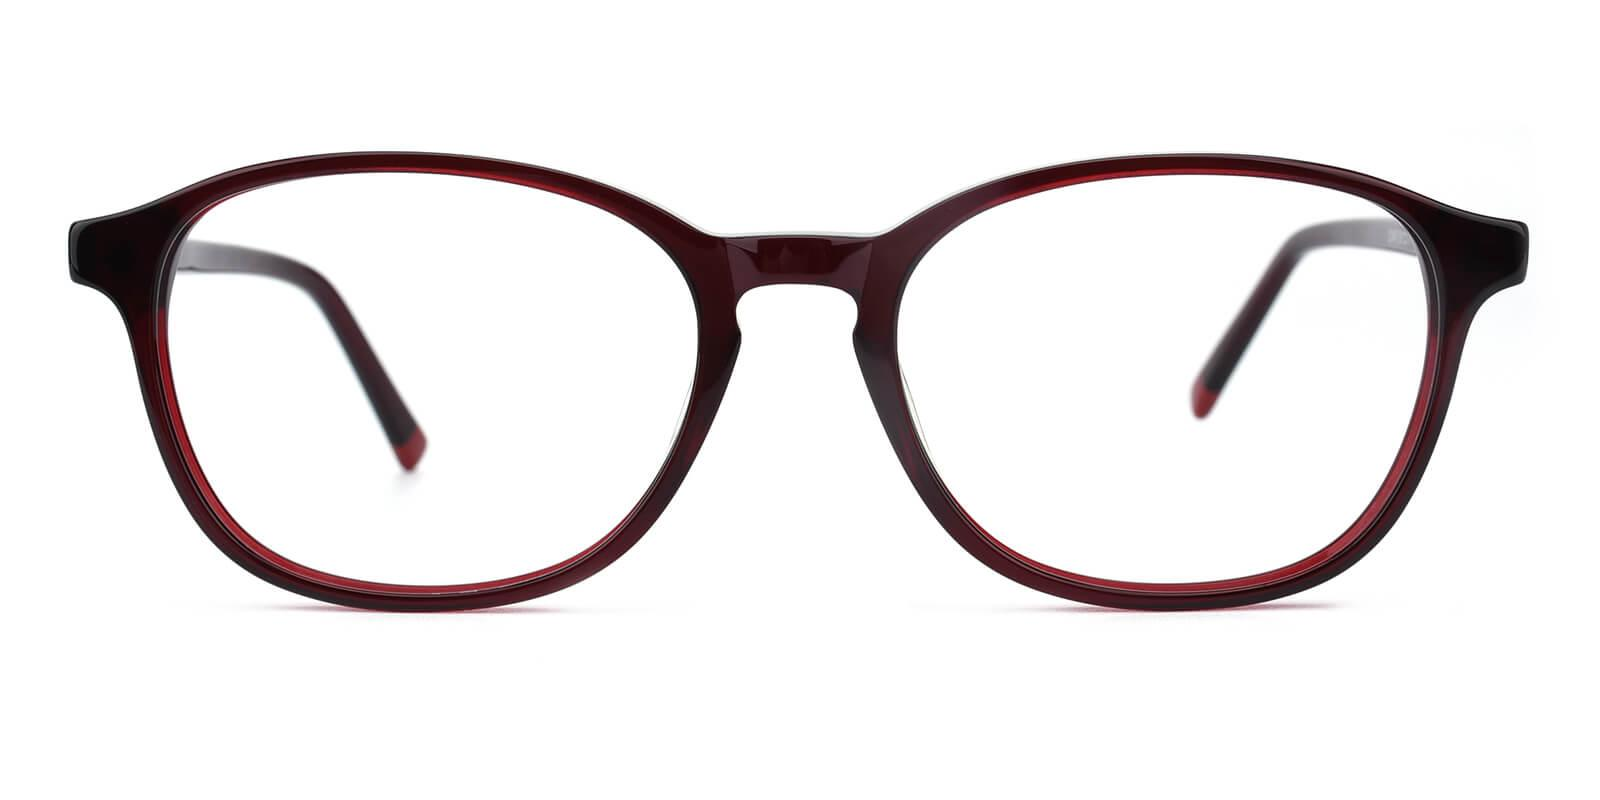 Grunei-Brown-Square-Acetate-Eyeglasses-additional2